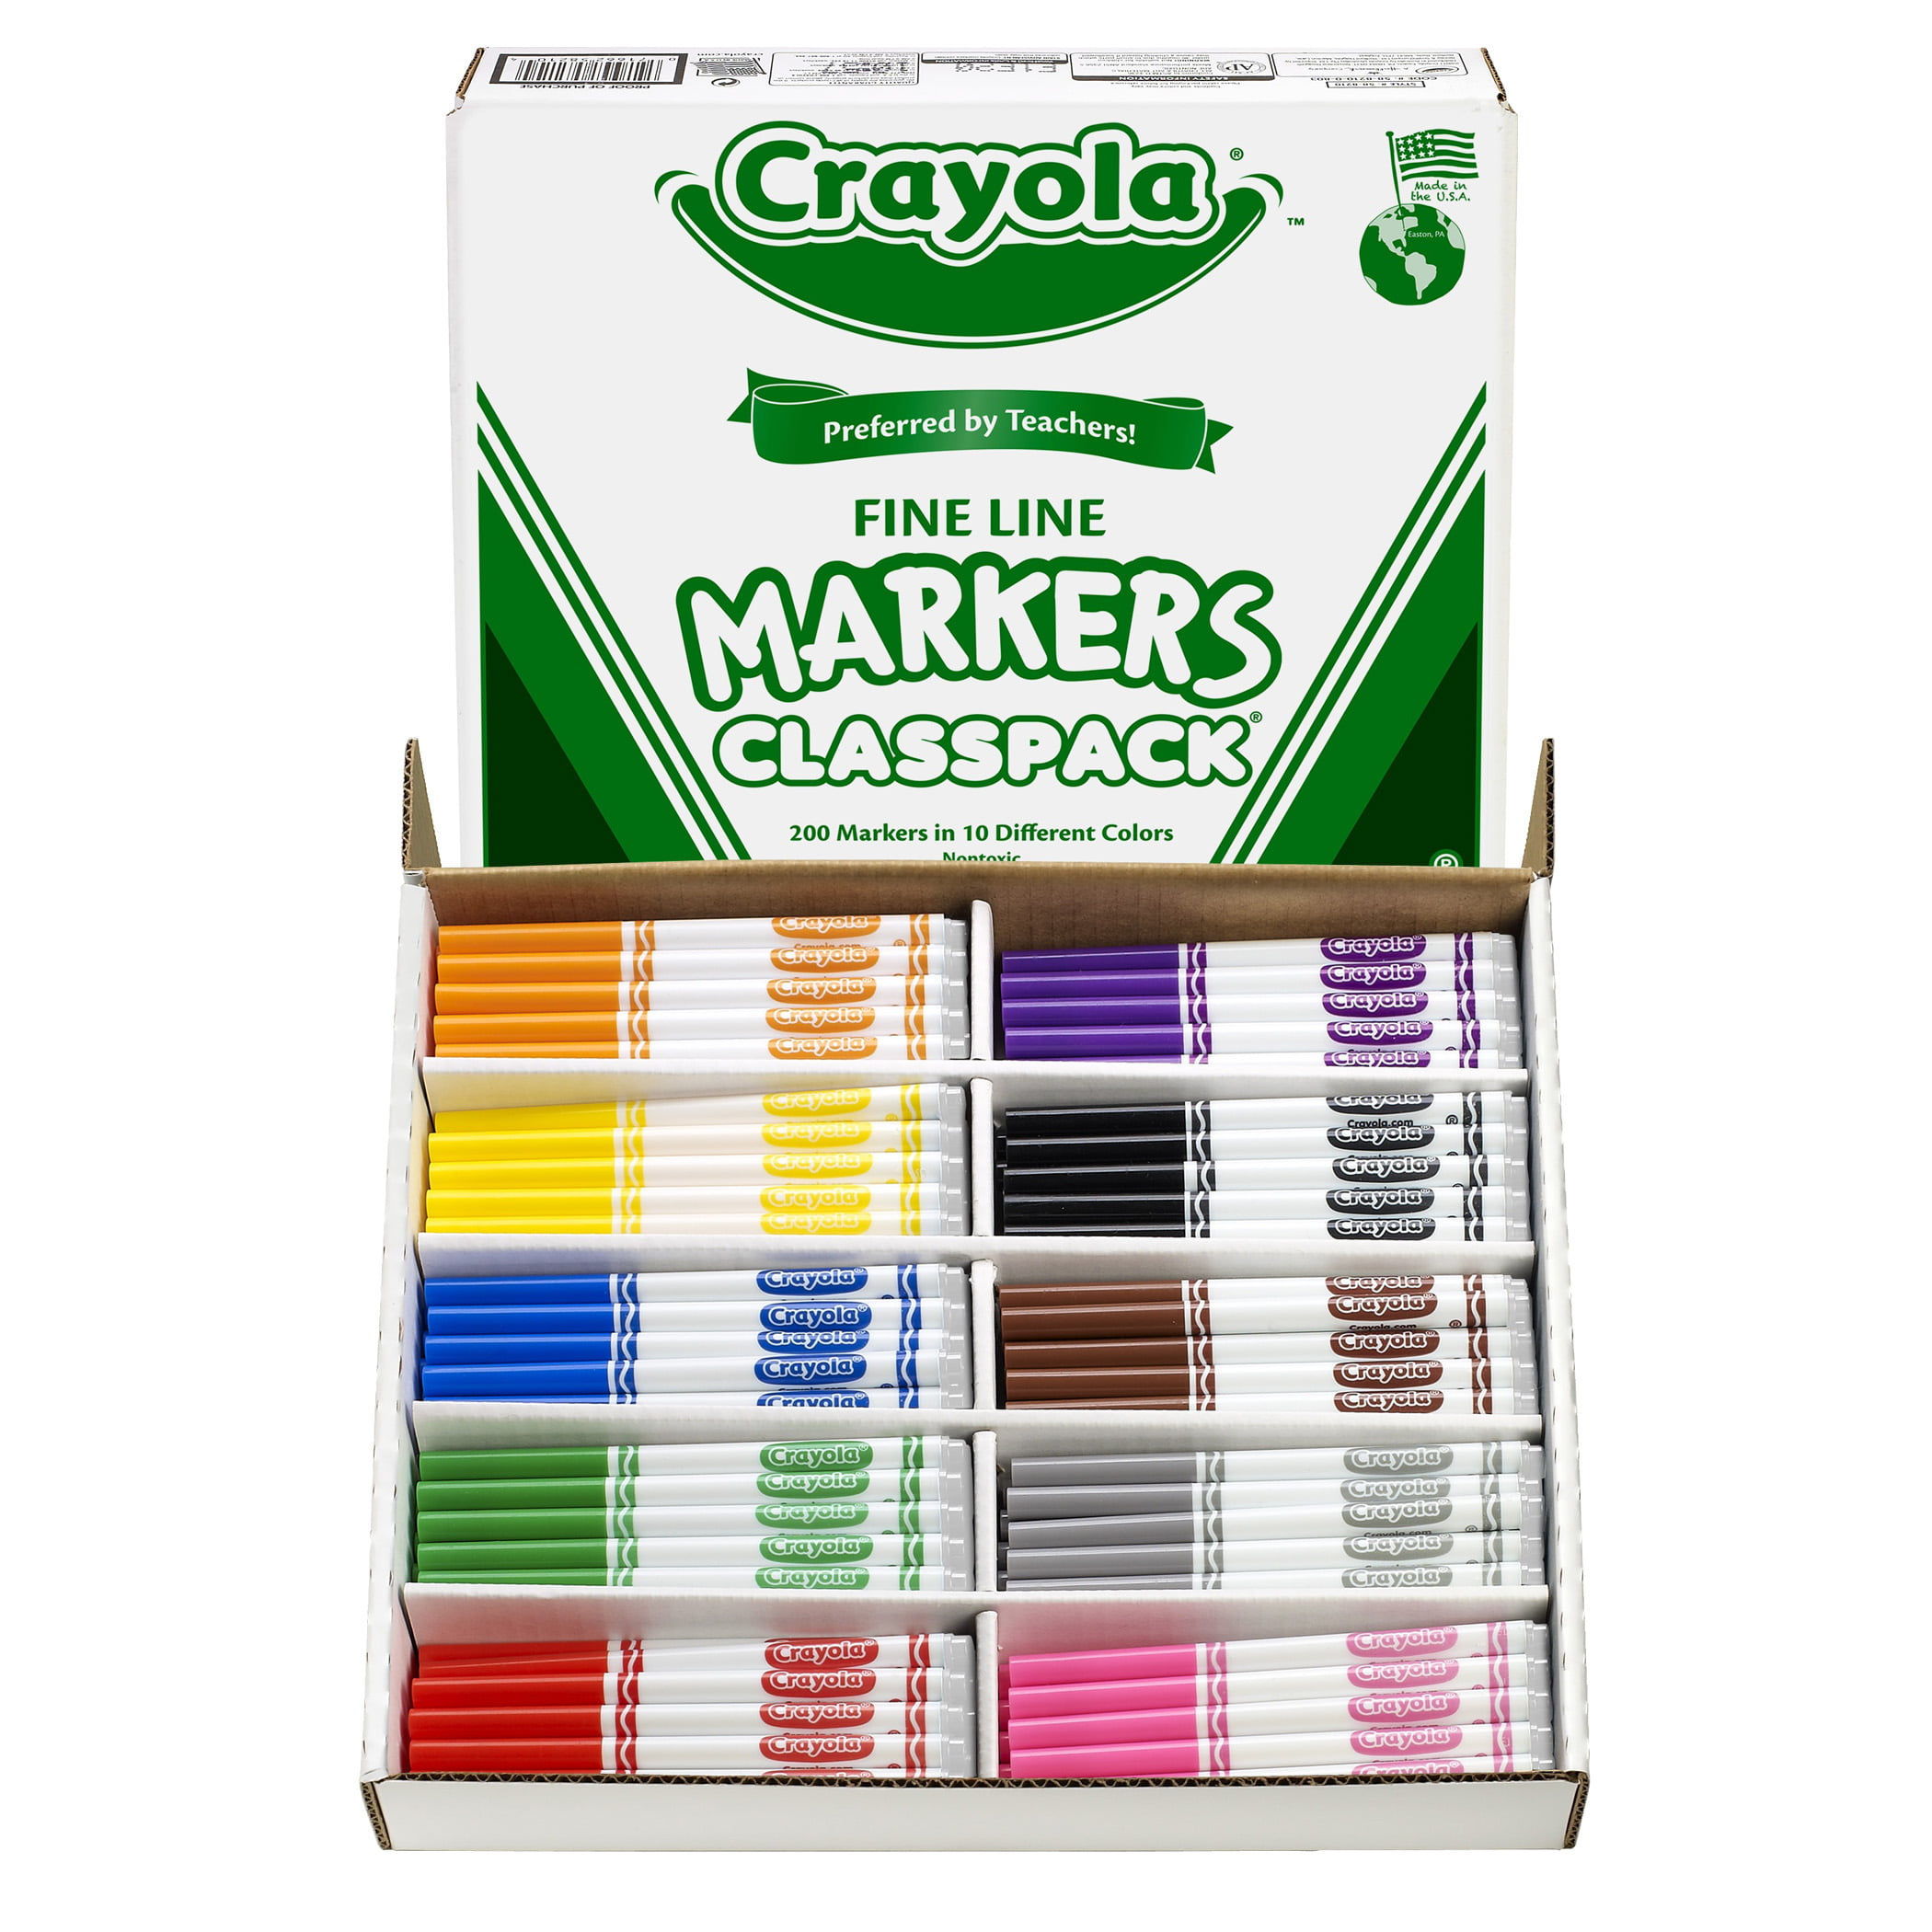 Crayola Non-Washable Classpack Markers, Fine Point, 10 Colors, Pack of 200 by Crayola LLC